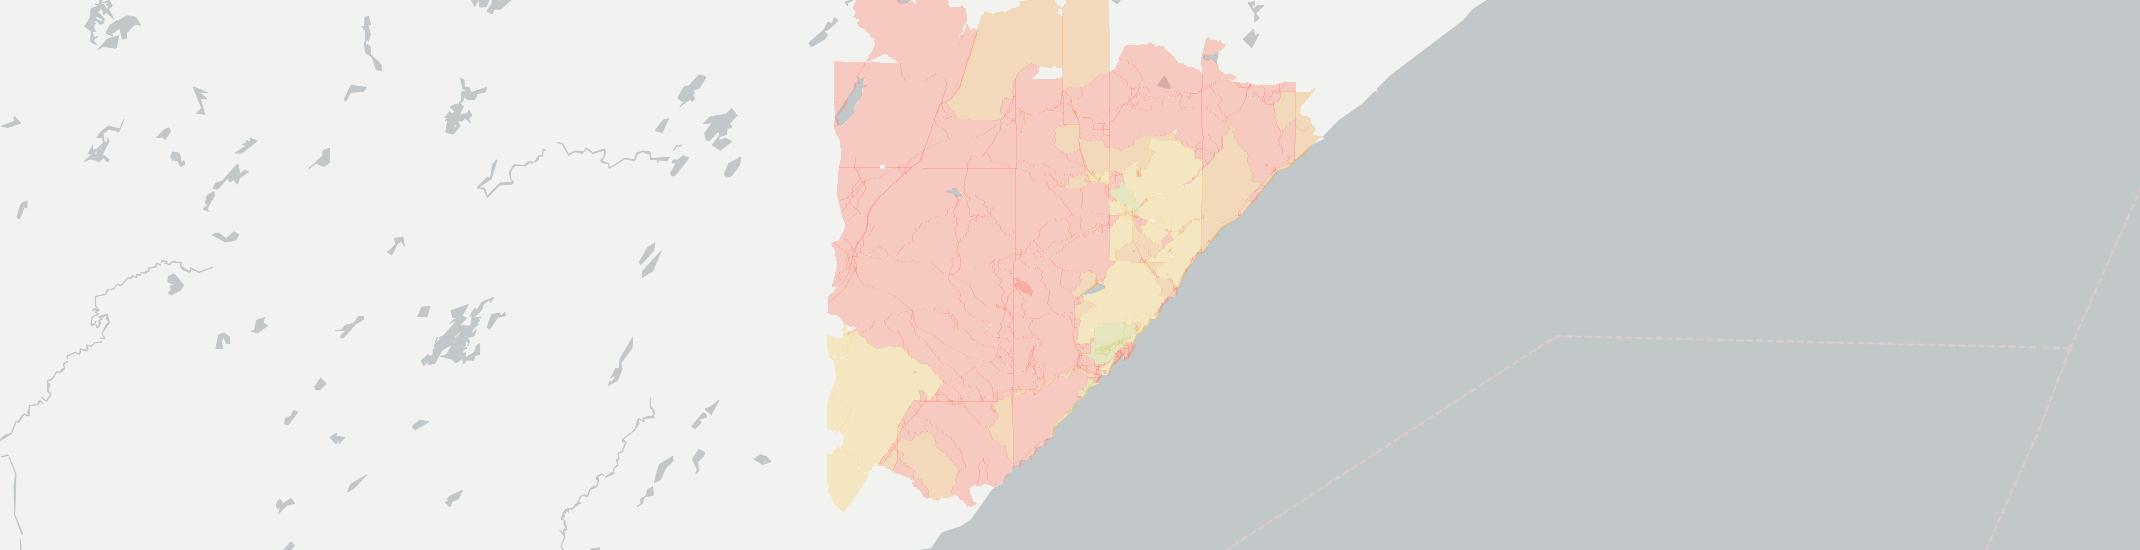 Silver Bay Internet Competition Map. Click for interactive map.